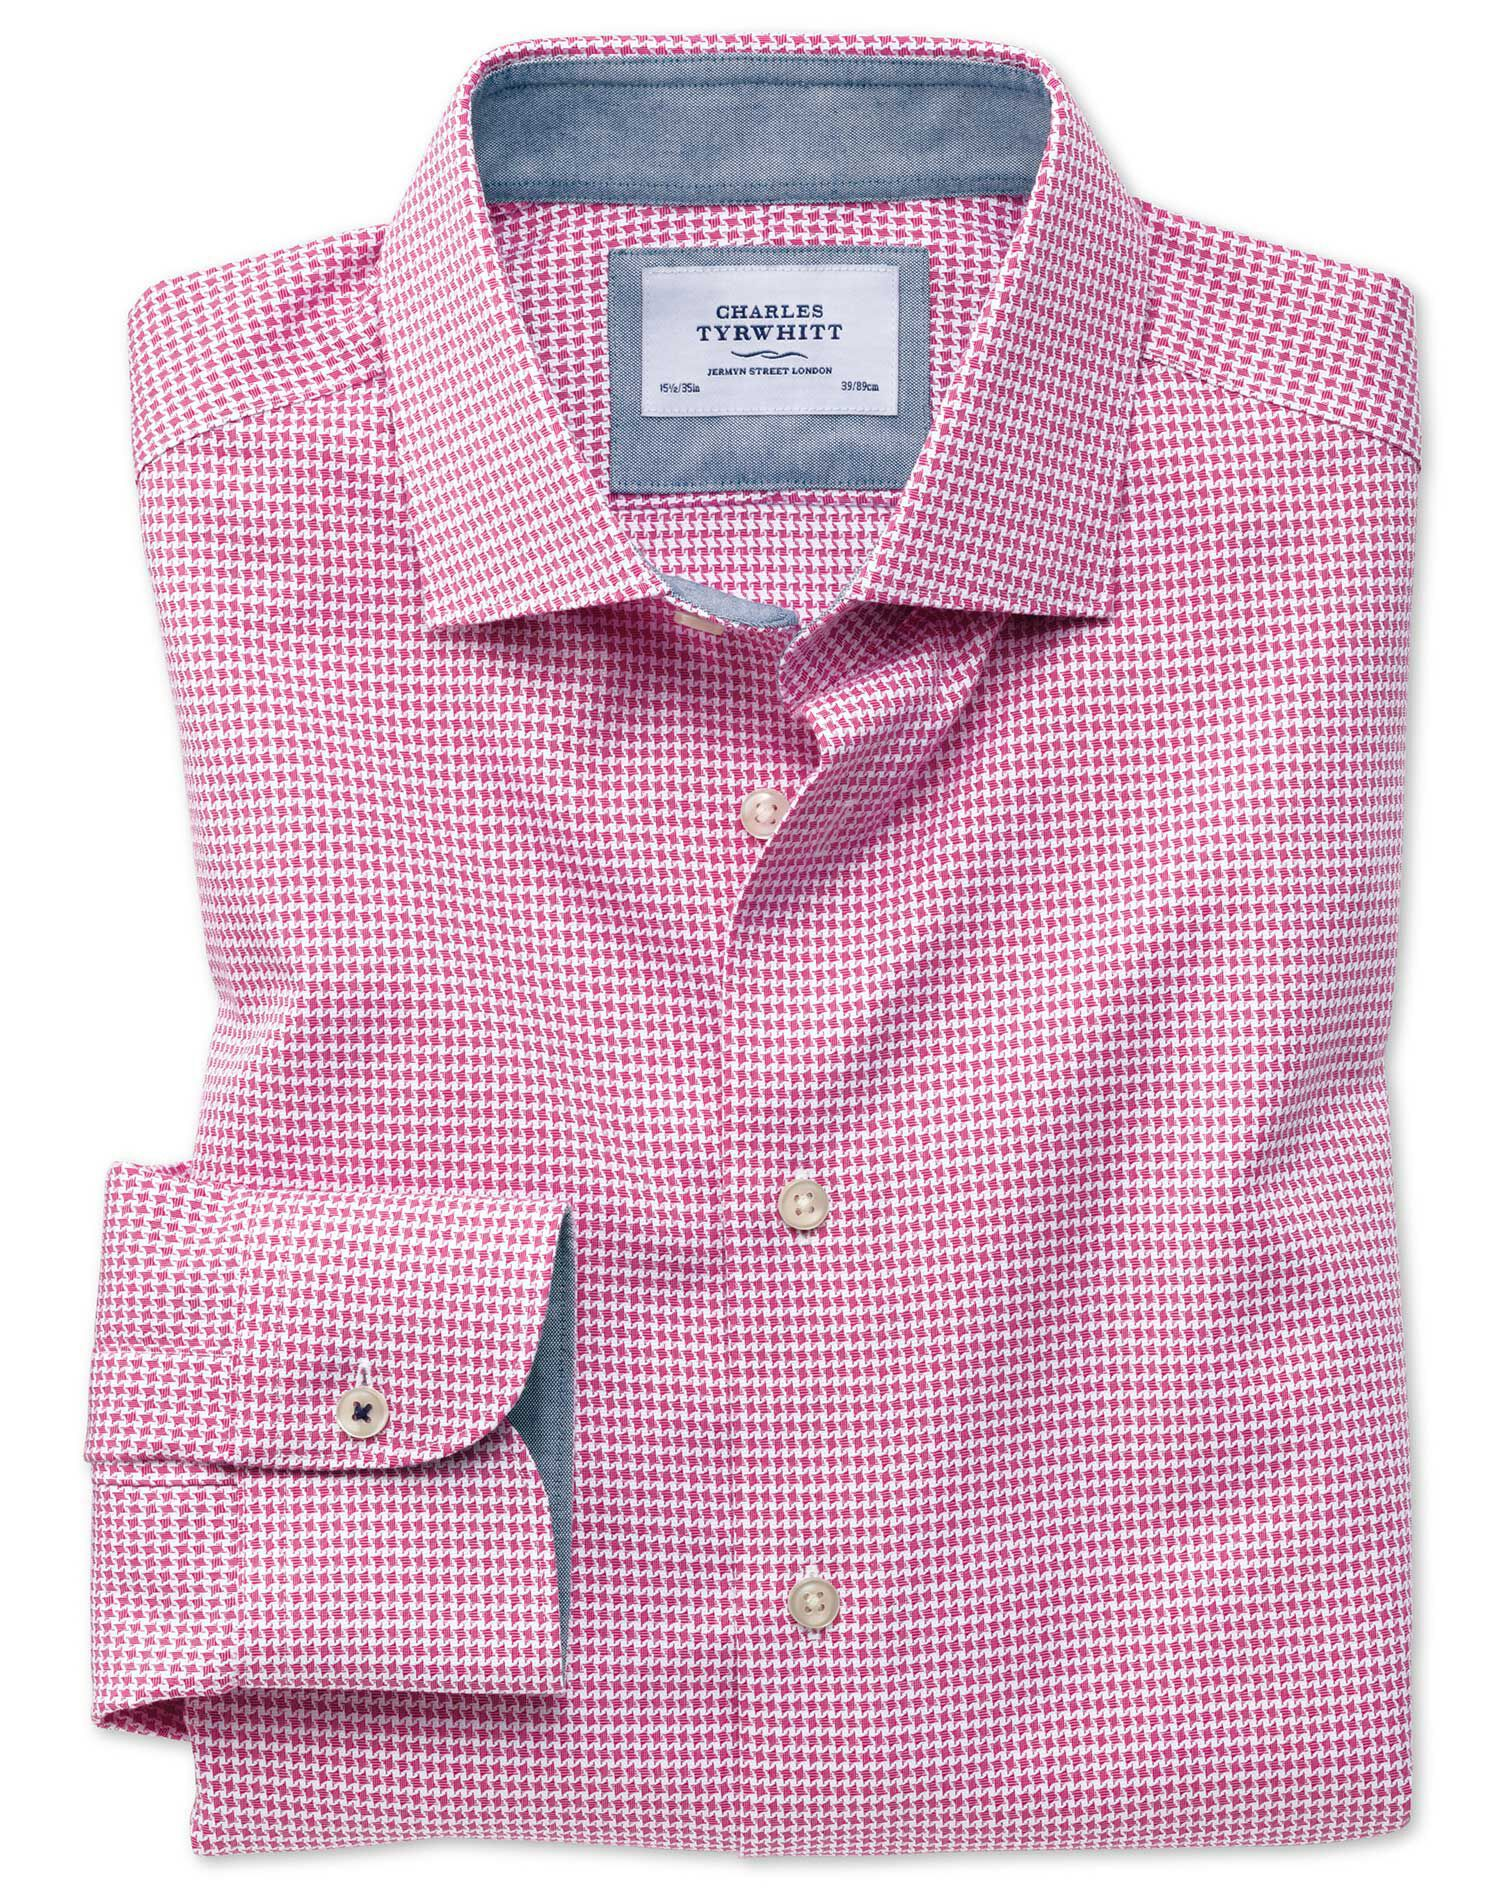 Extra Slim Fit Semi-Cutaway Business Casual Non-Iron Modern Textures Pink Puppytooth Cotton Formal S